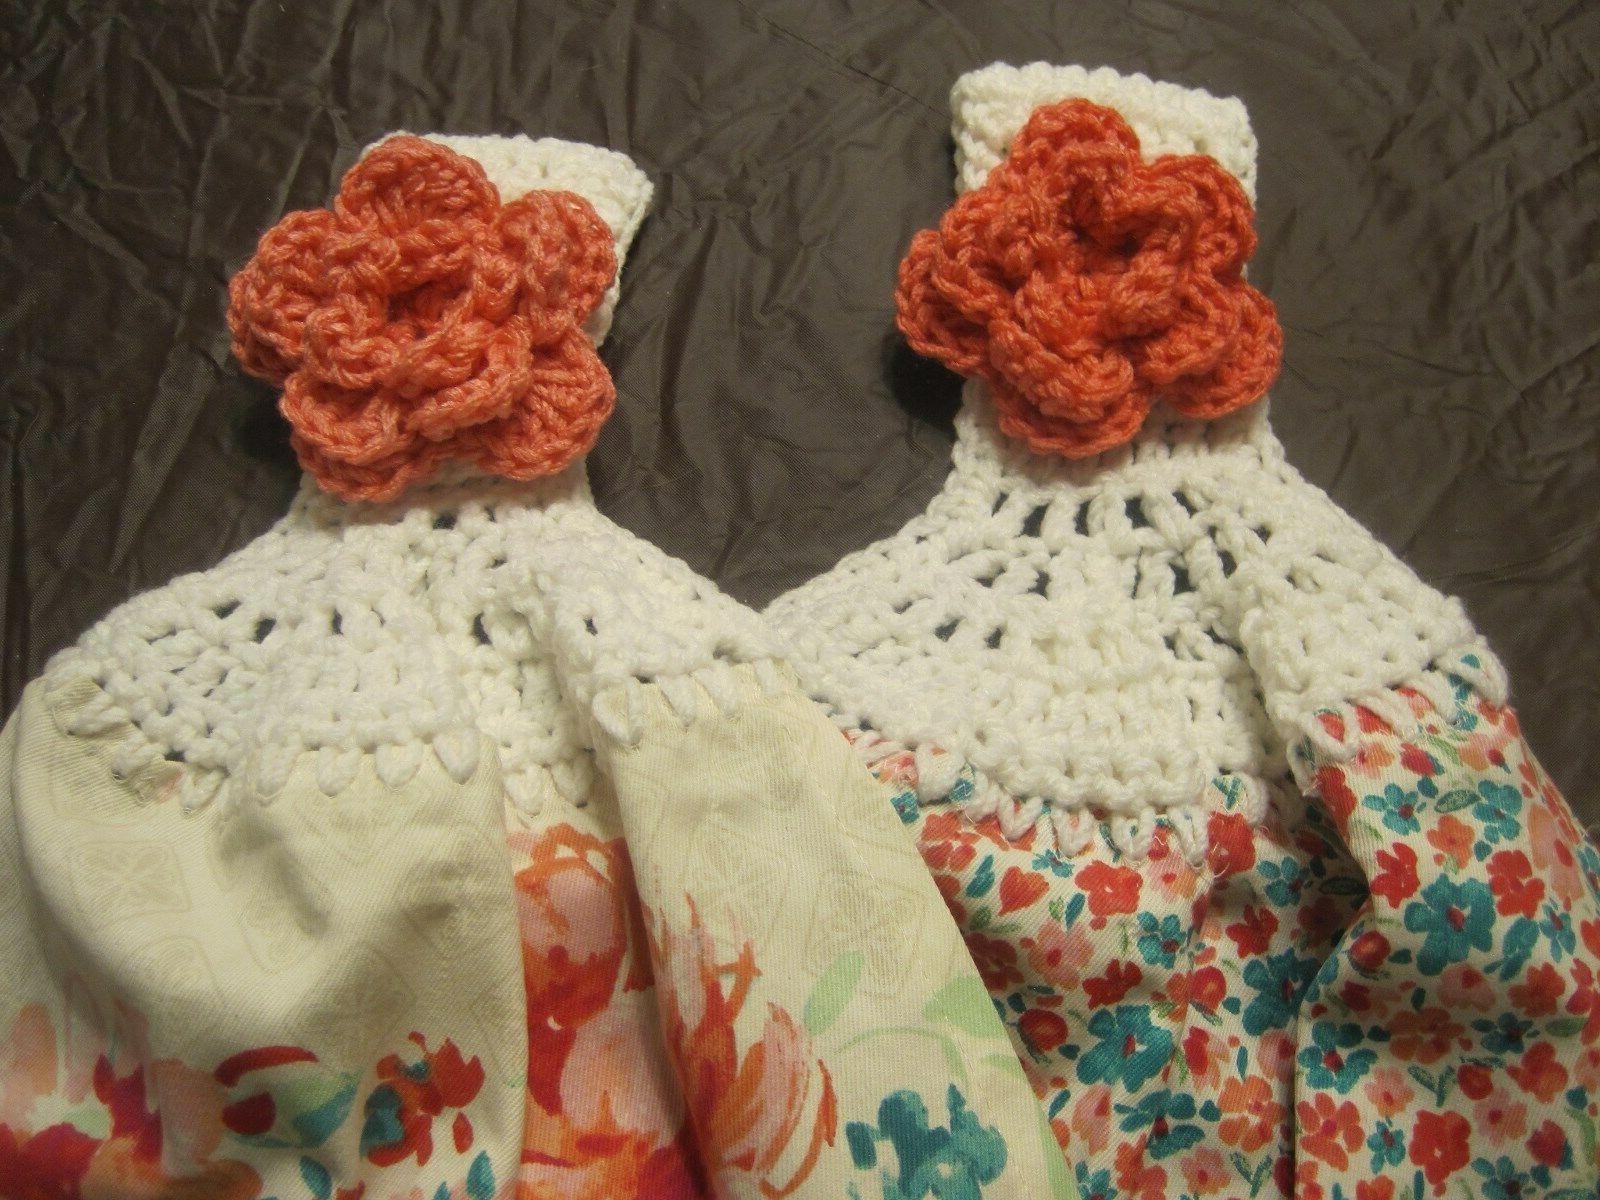 Woman Crochet Towels